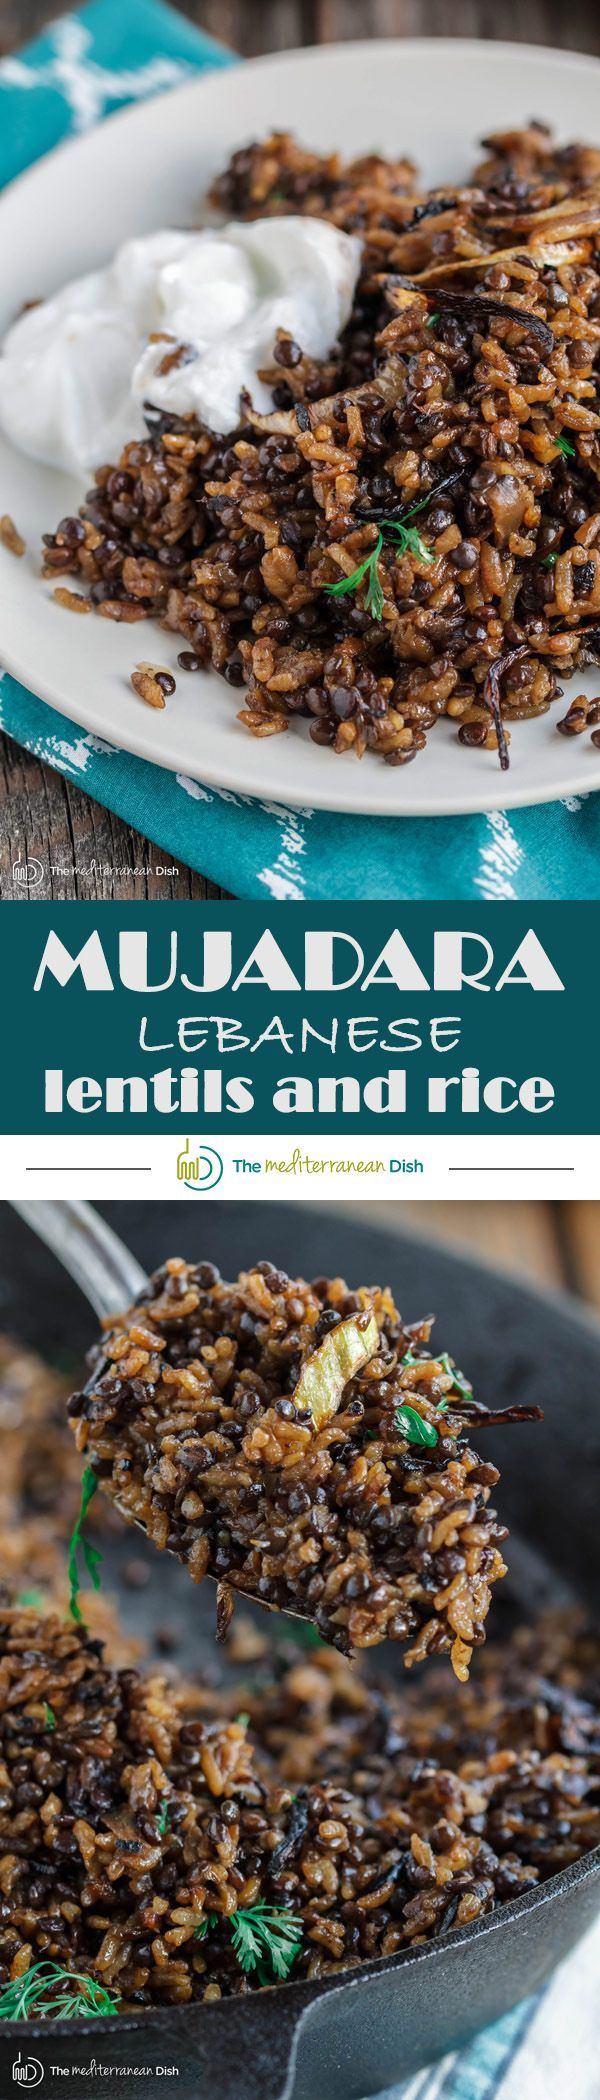 Mujadara: Lentils and Rice with Crispy Onions